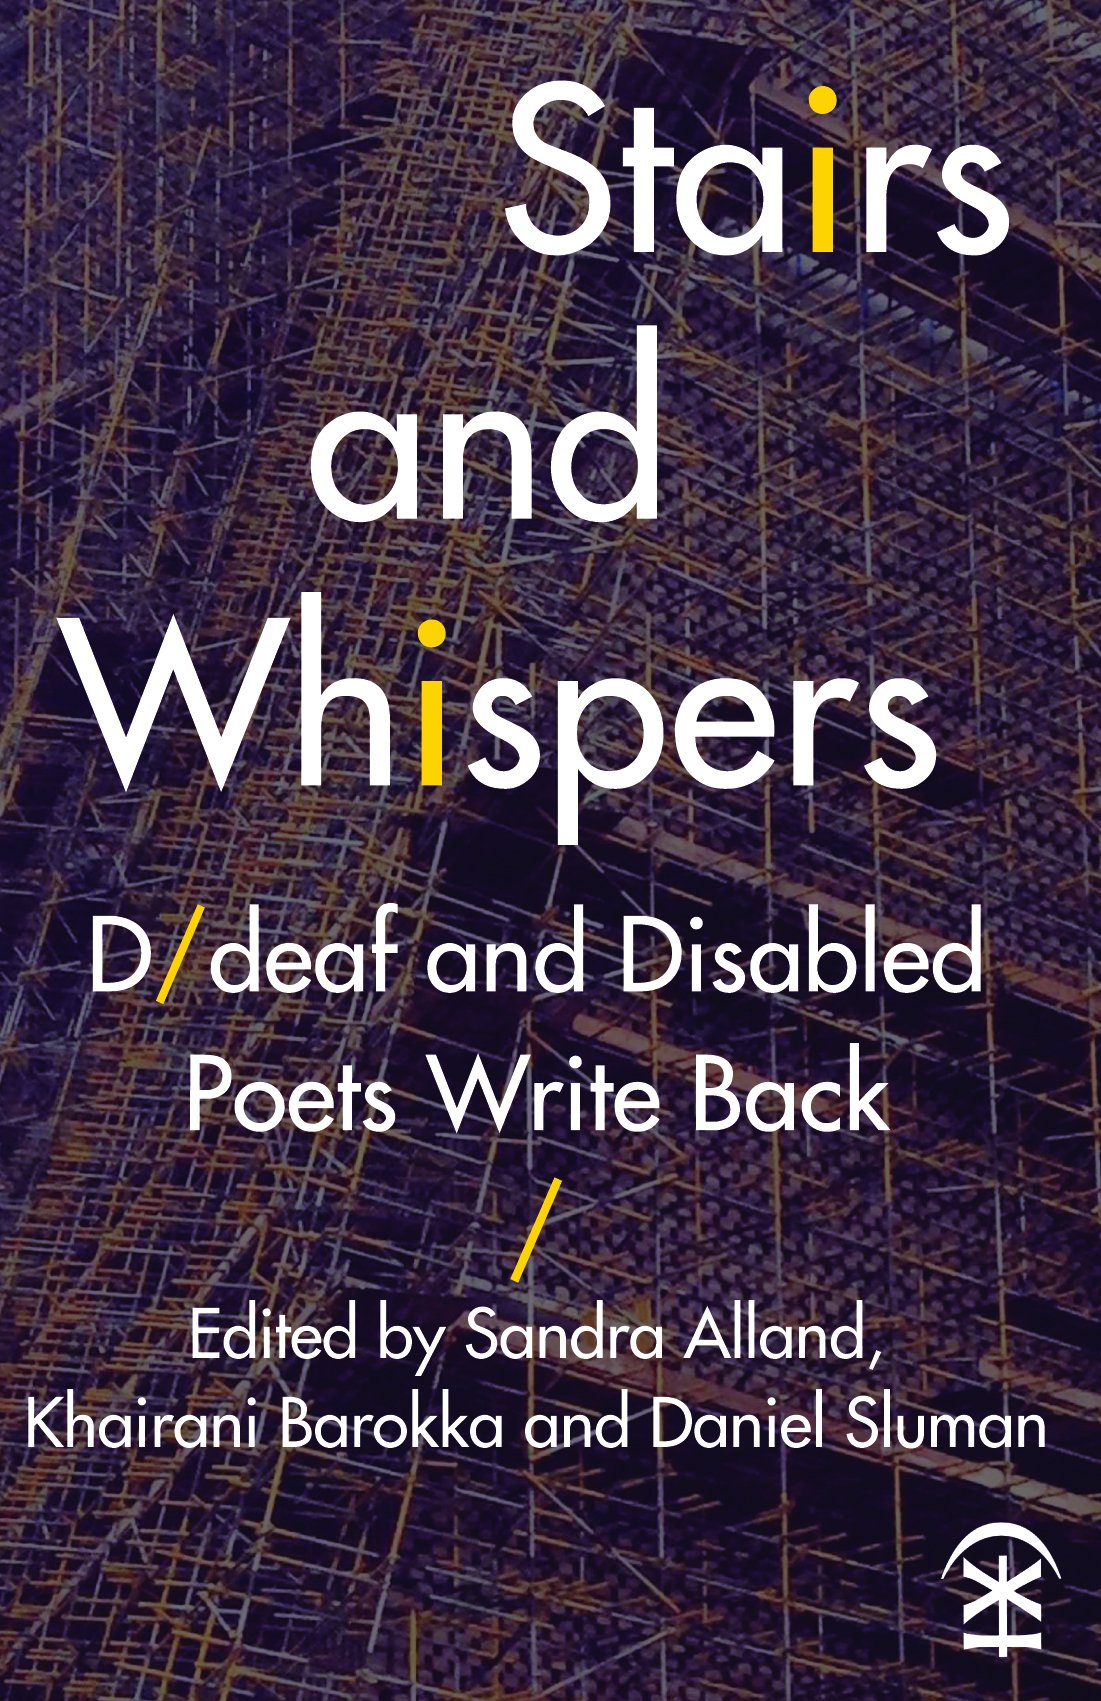 Cover of Stairs and Whispers: D/deaf and Disabled Poets Write Back